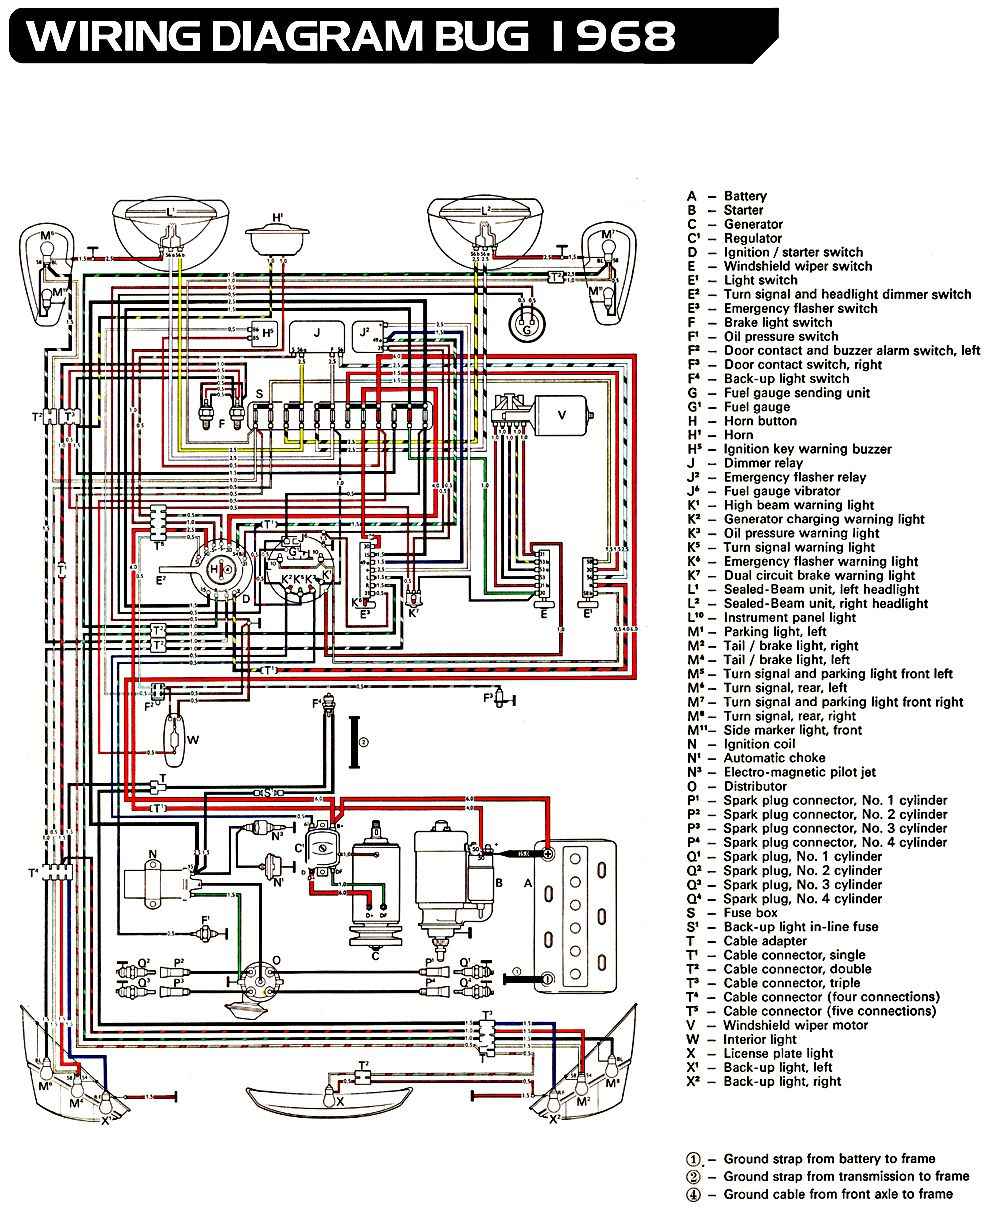 3a1908112d3826270ed5e3be362292bf vw bug ignition wiring diagram 73 vw wiring diagram free 1968 vw bug headlight wiring diagram at metegol.co